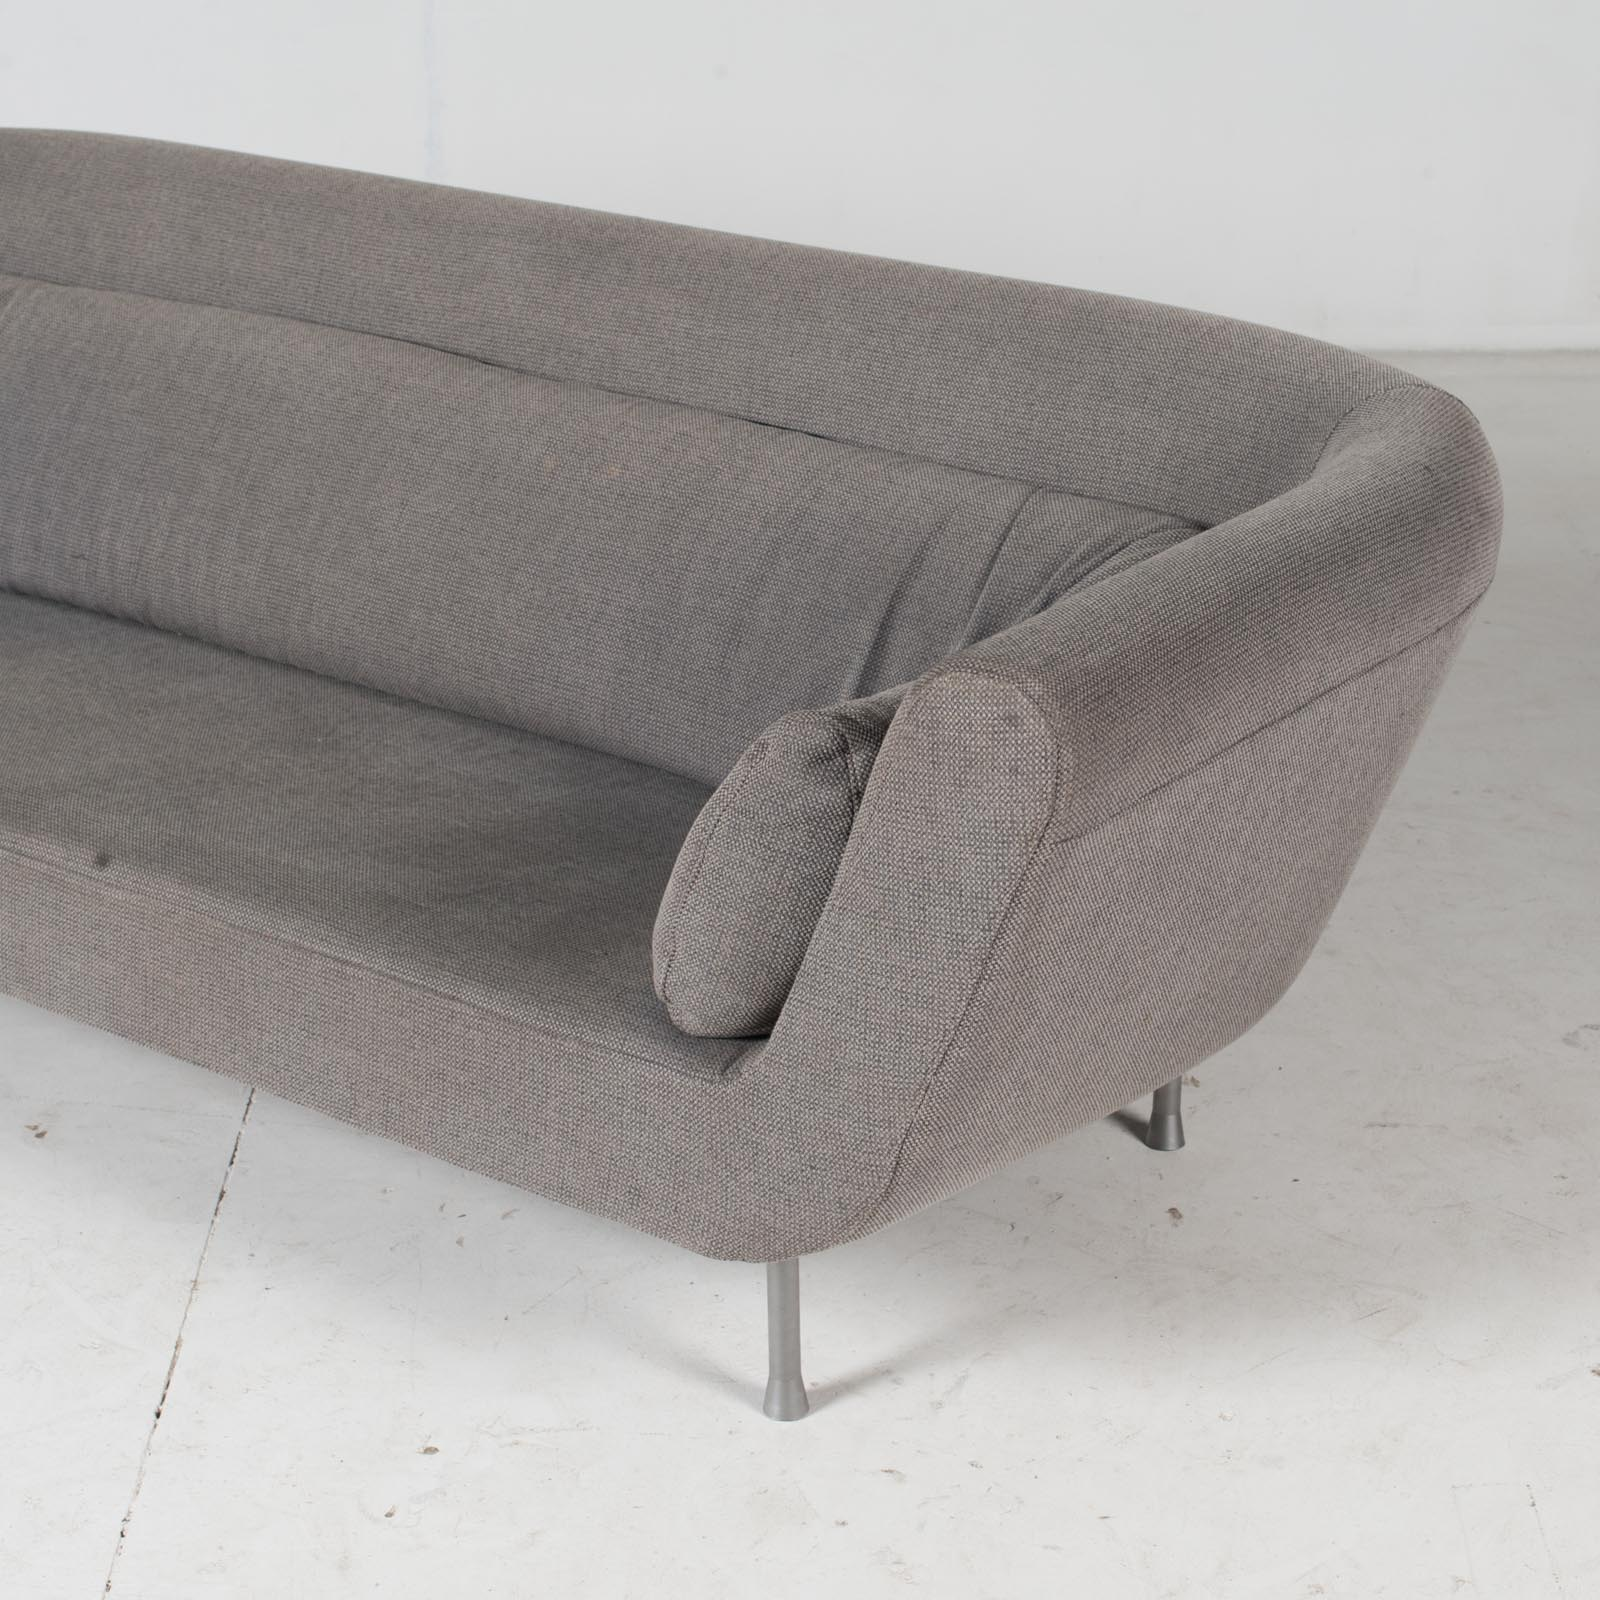 Sofa From The Yang Series By Francois Bauchet For Ligne Roset, 2002, France6